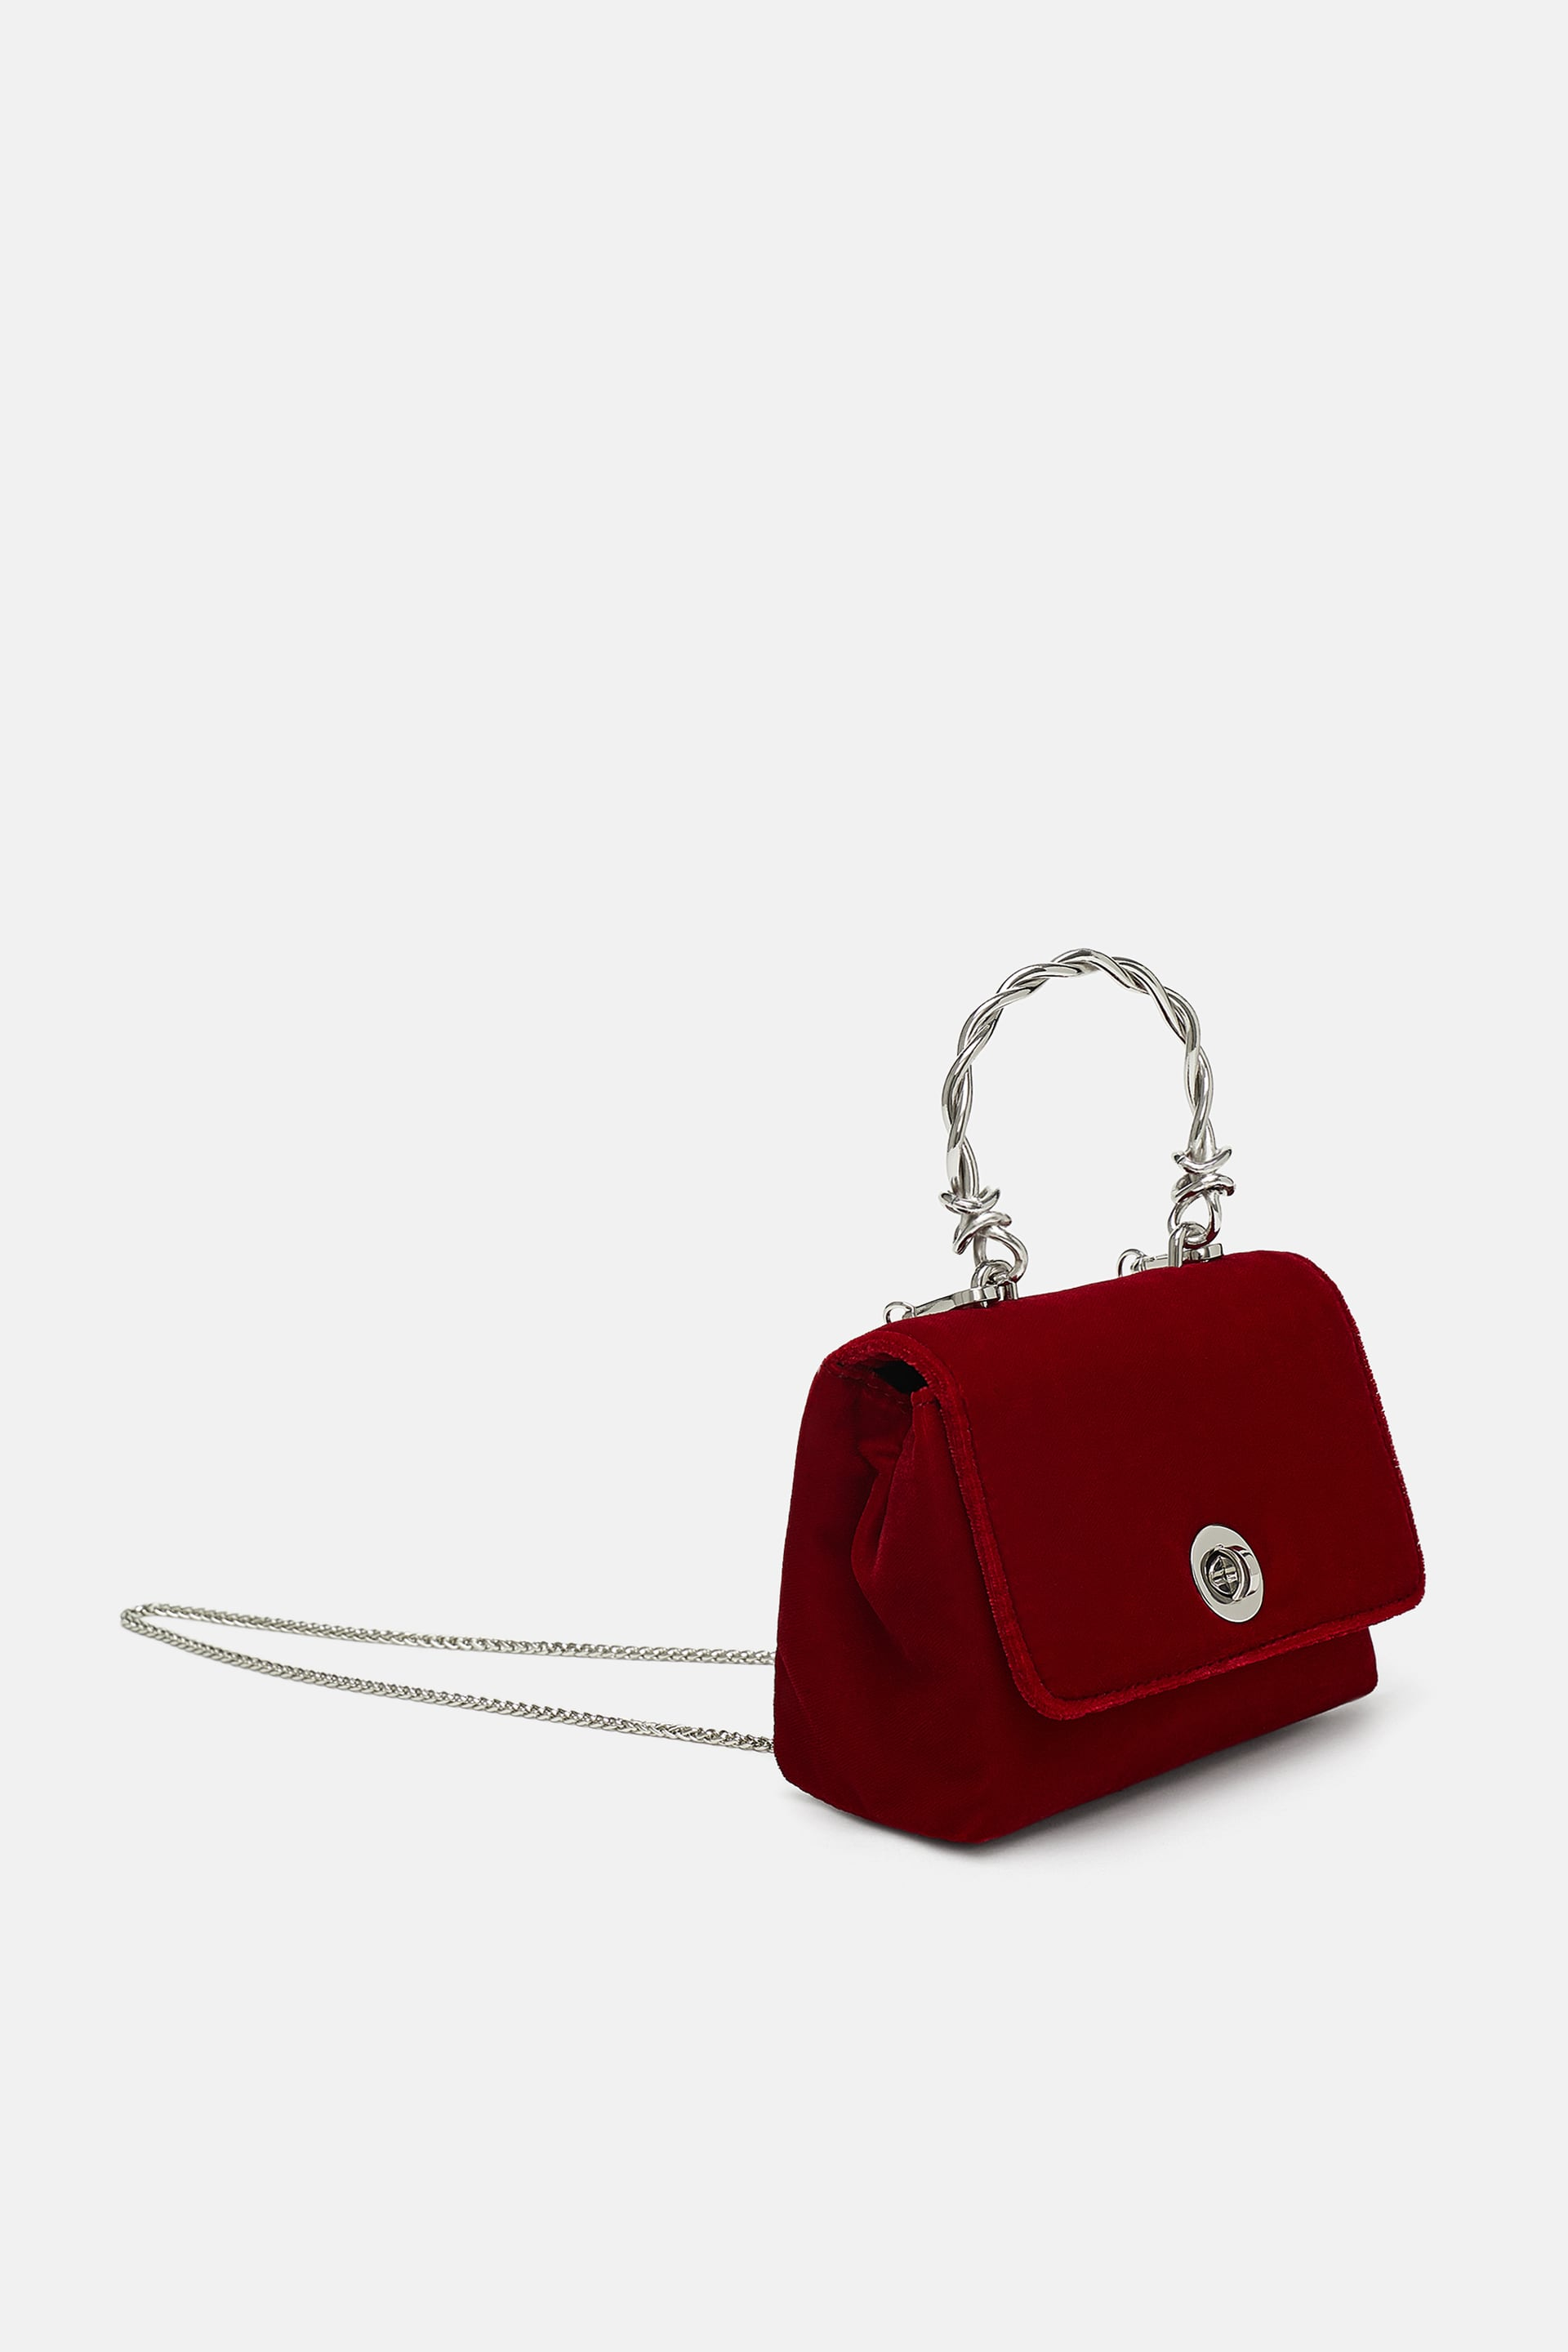 Copy of Copy of ZARA MINI VELVET MESSENGER BAG